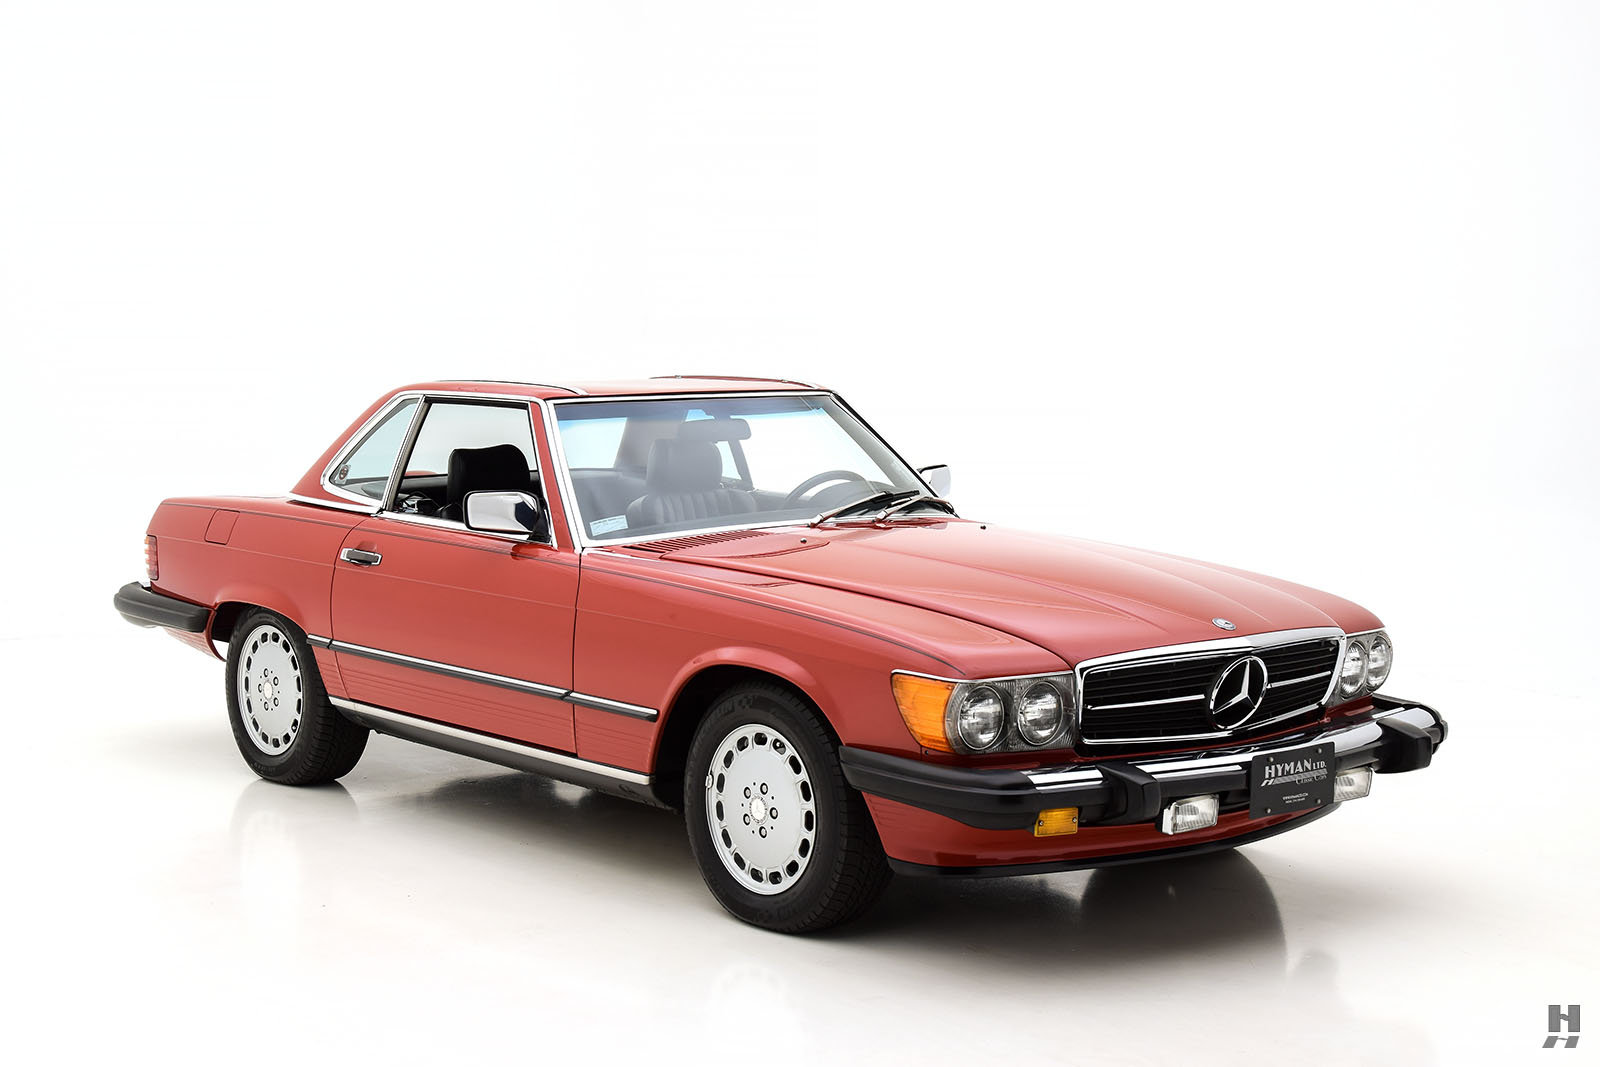 1987 MERCEDES-BENZ 560SL CONVERTIBLE For Sale (picture 2 of 6)